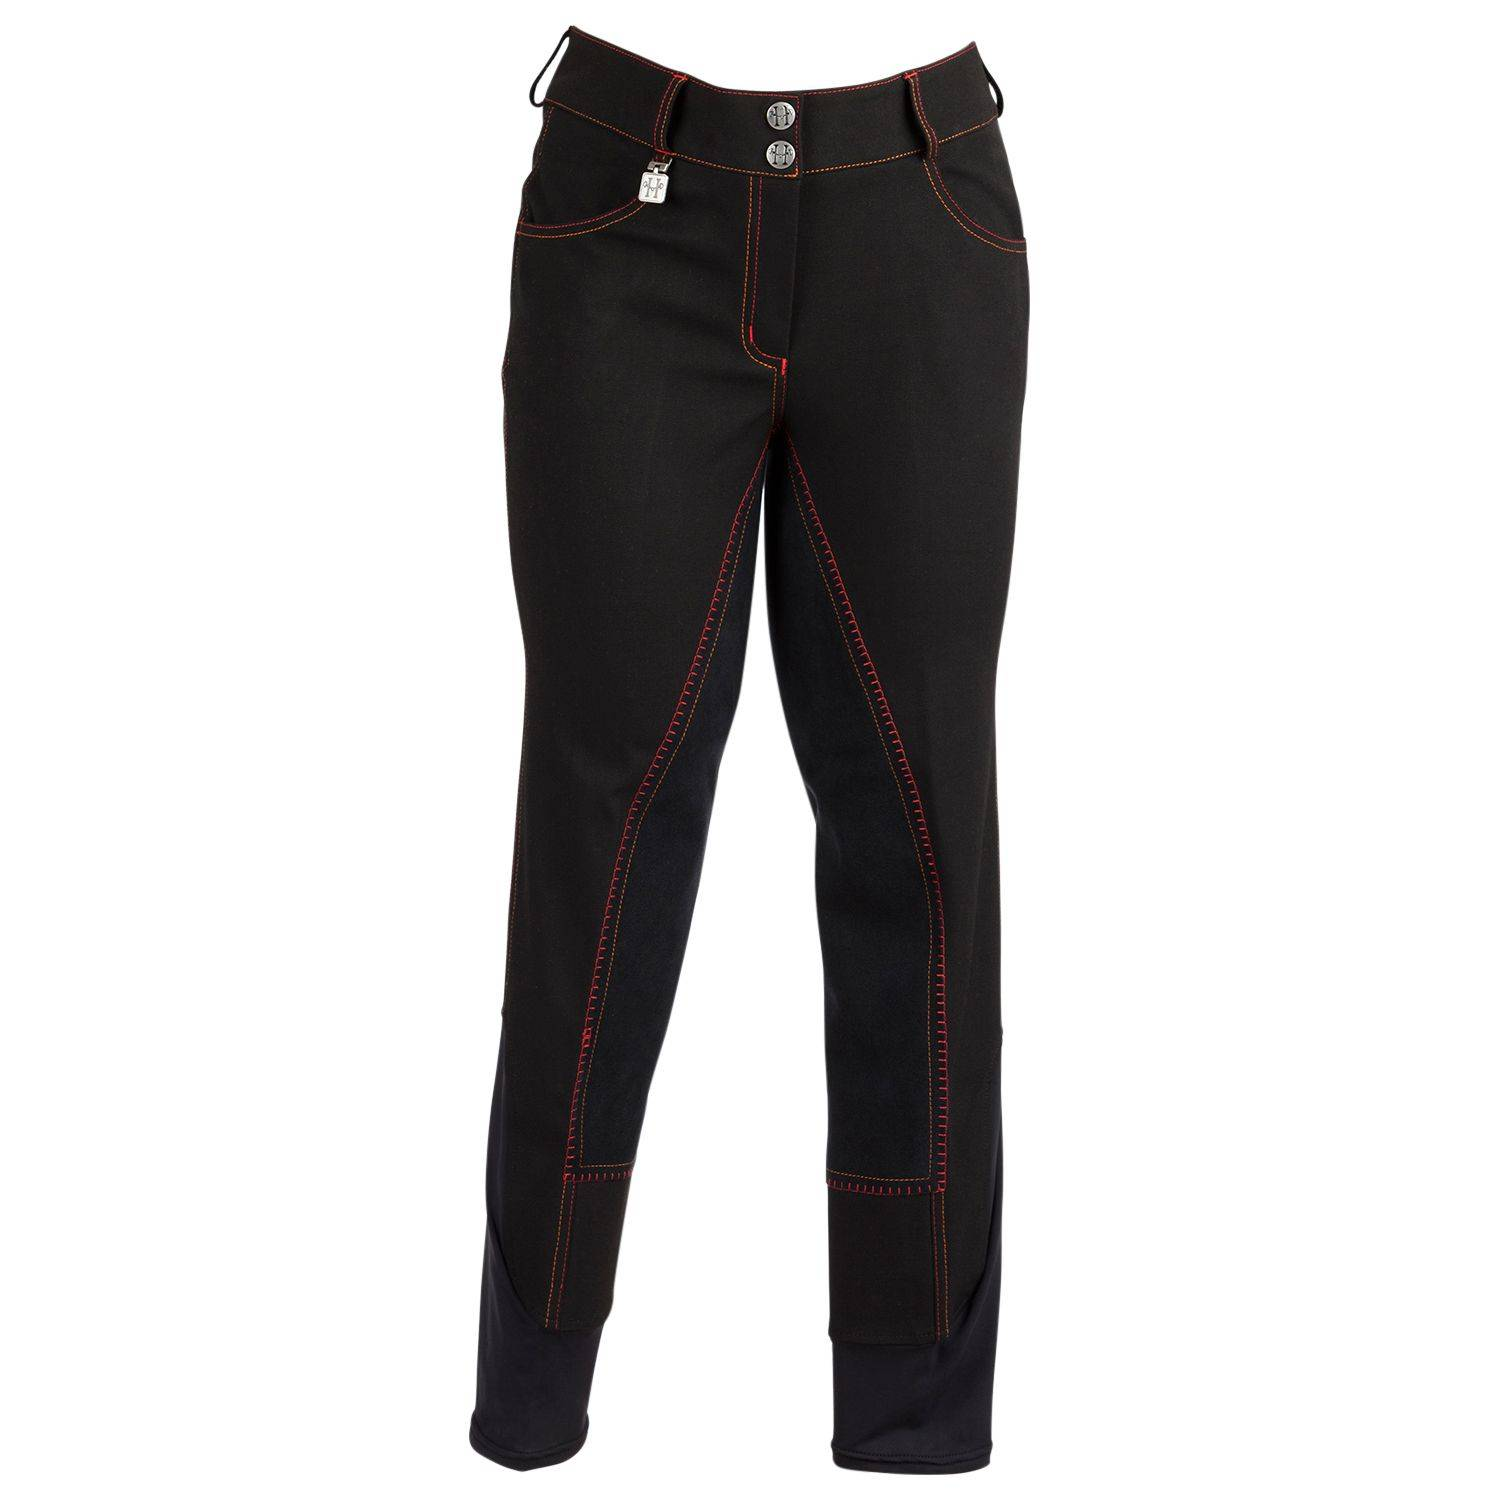 Huntley Riding Pant with Sequined Pockets - Ladies, Full Seat